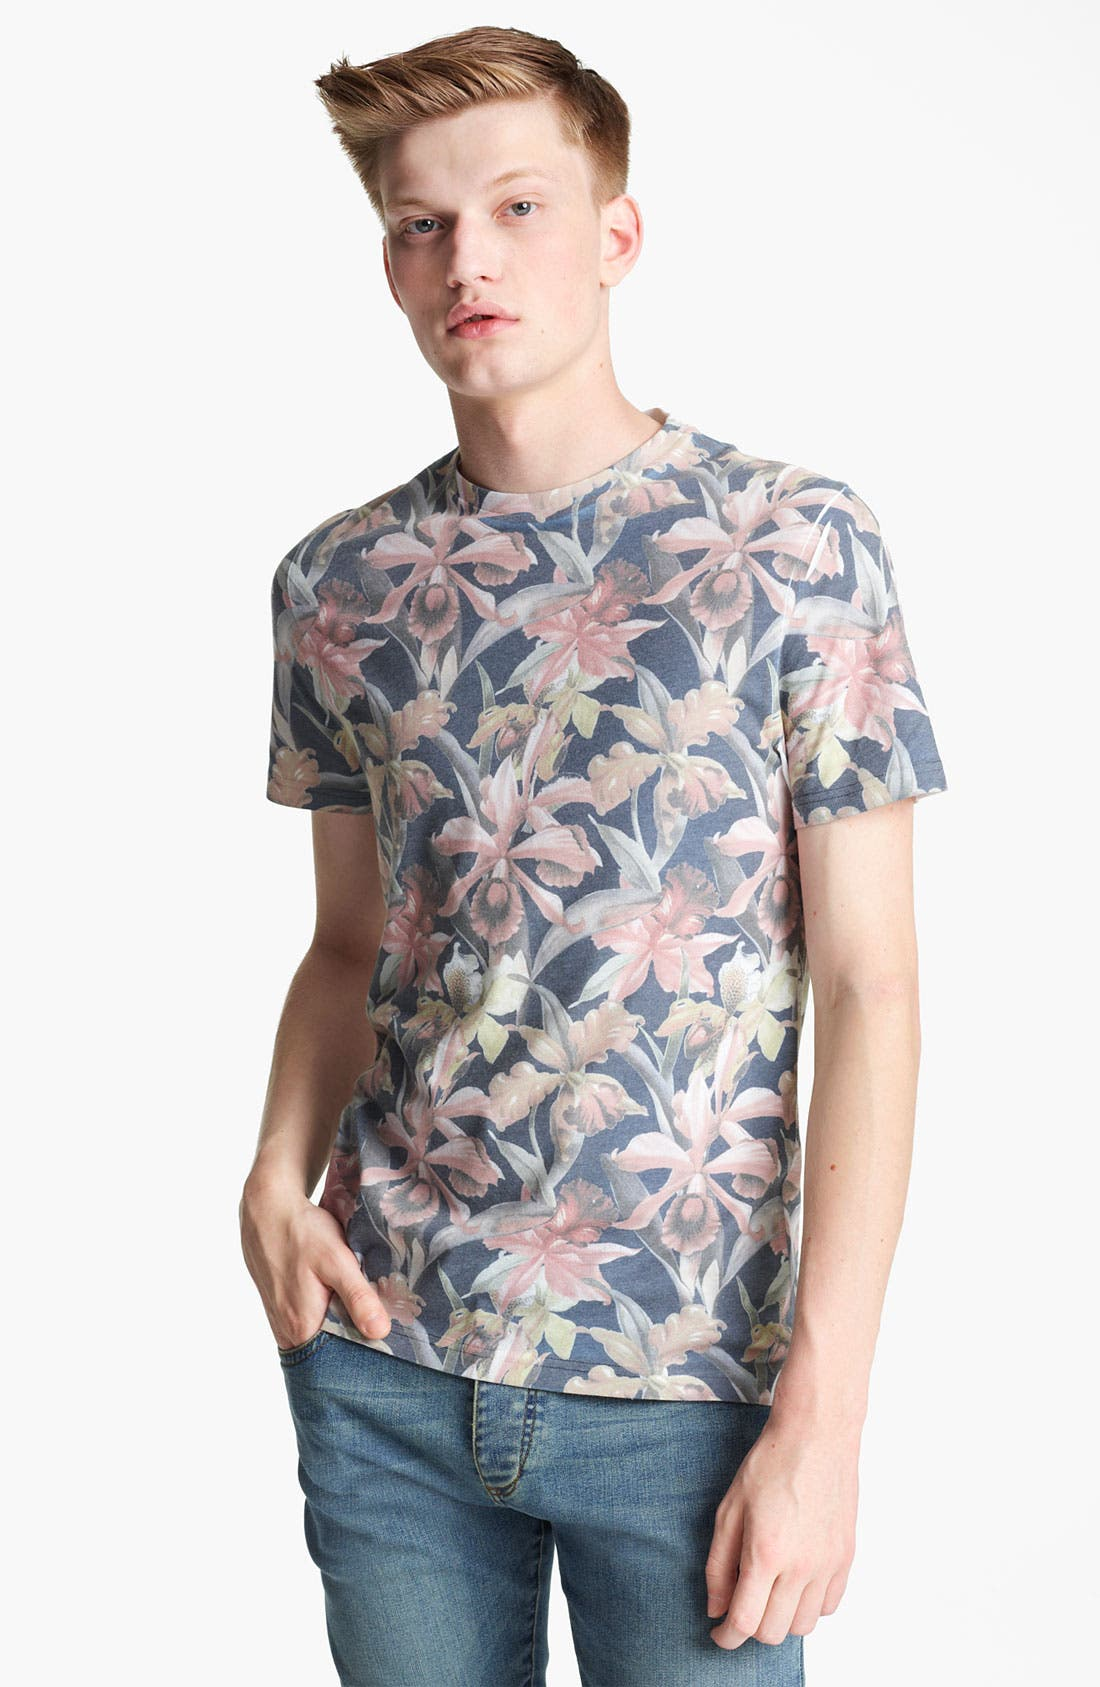 Alternate Image 1 Selected - Topman 'Moody Floral' Print T-Shirt